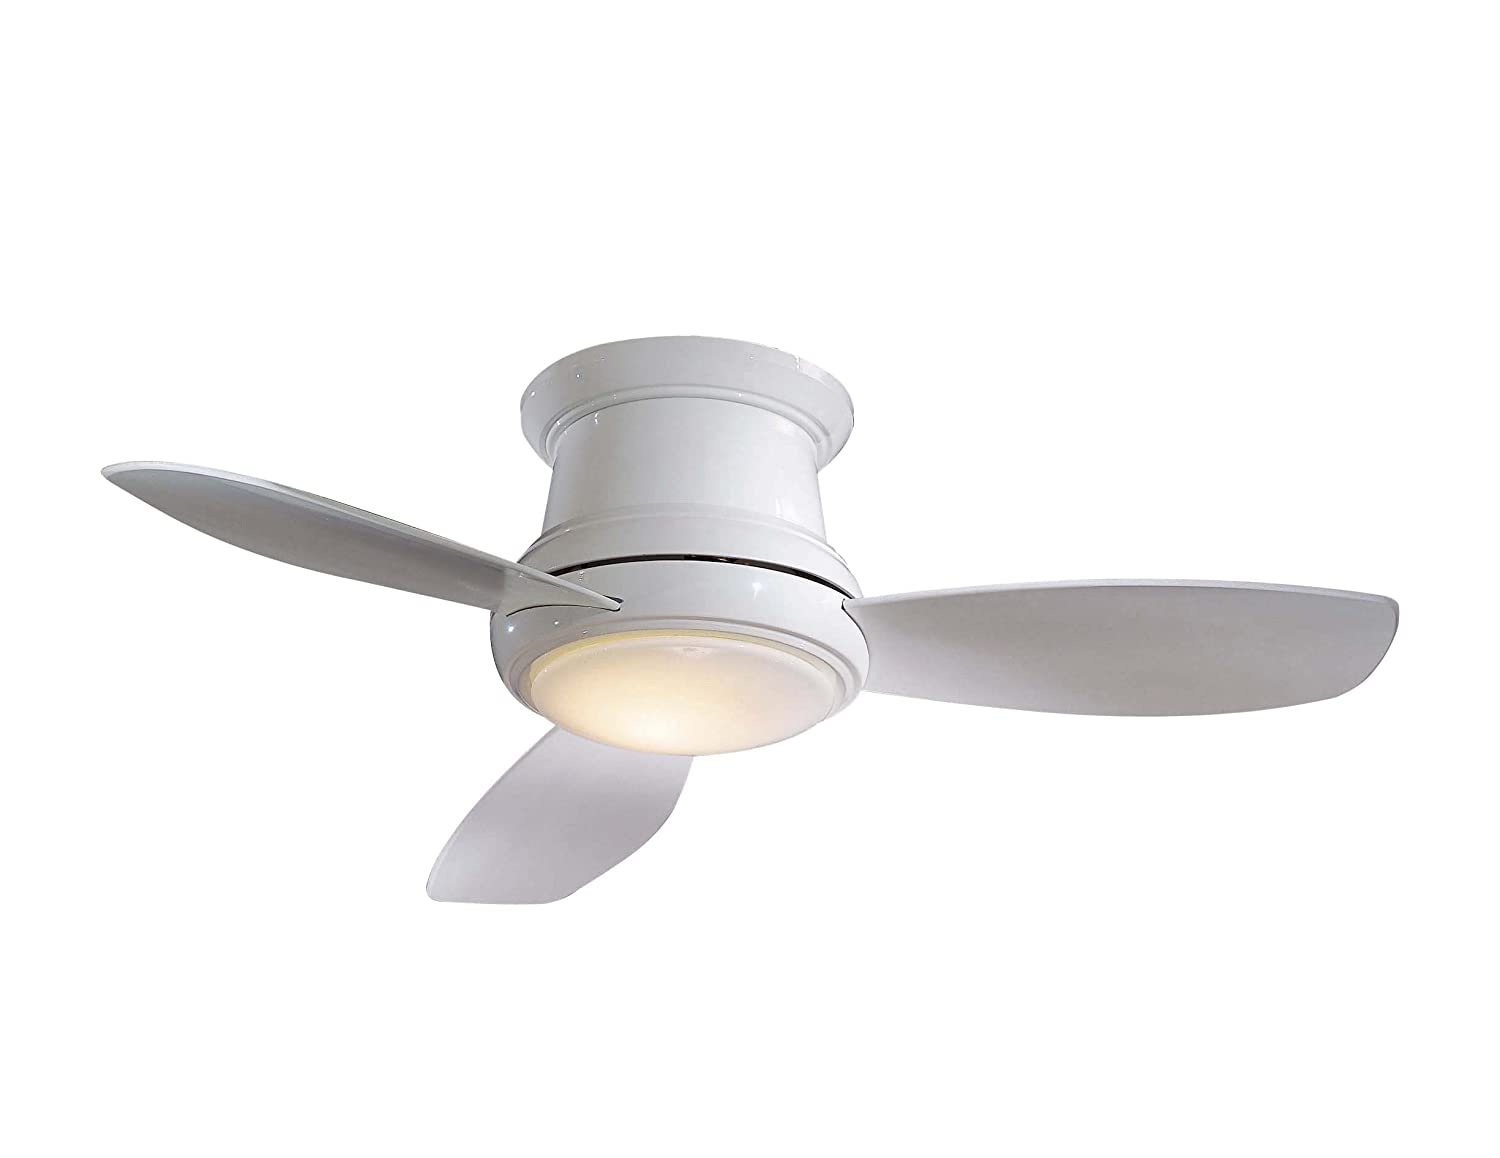 Minka aire f519 wh concept ii 52 flush mount ceiling fan with minka aire f519 wh concept ii 52 flush mount ceiling fan with light remote control white flushmount ceiling fan amazon mozeypictures Gallery